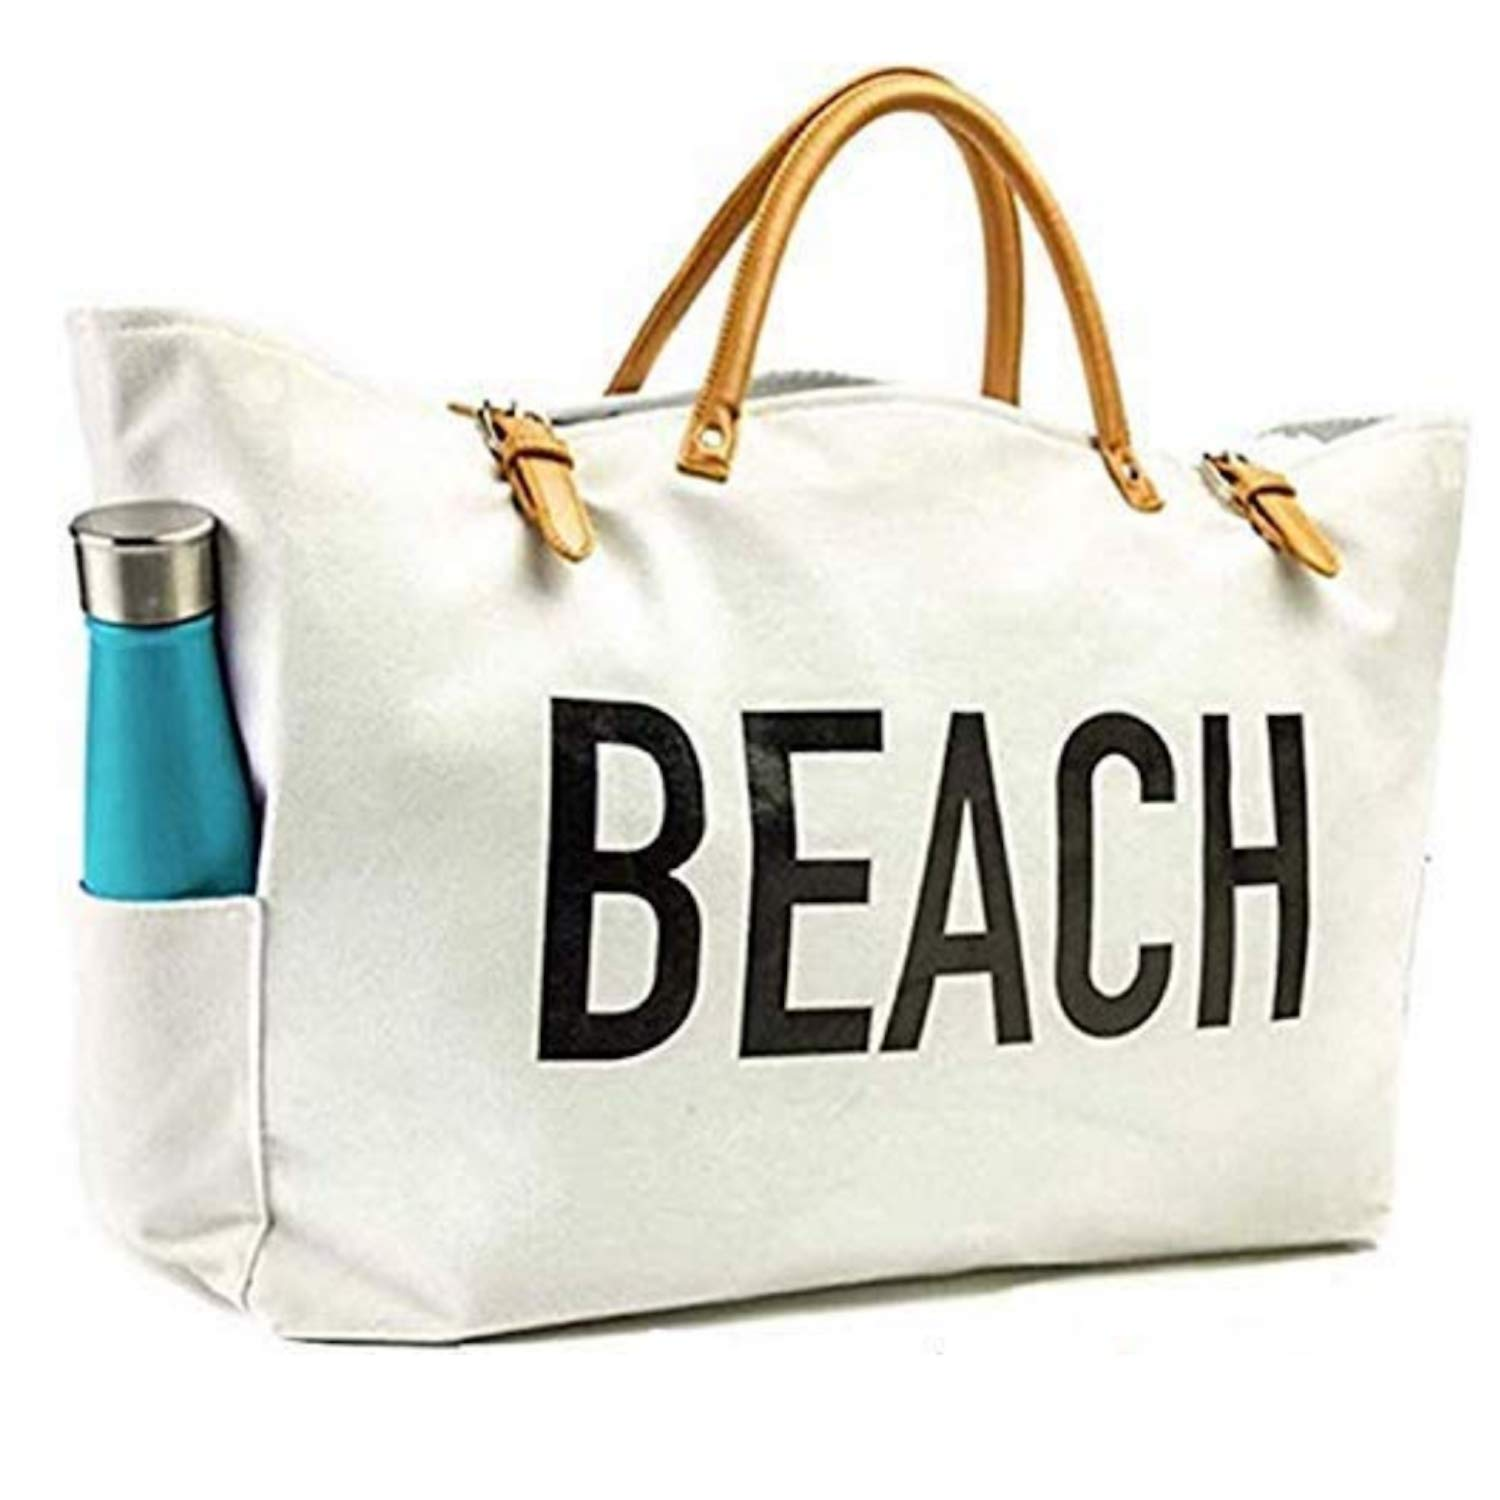 KEHO Fashion Beach Bag & Travel Tote, Large & Roomy, Waterproof Lining, Multiple Pockets (White Canvas)